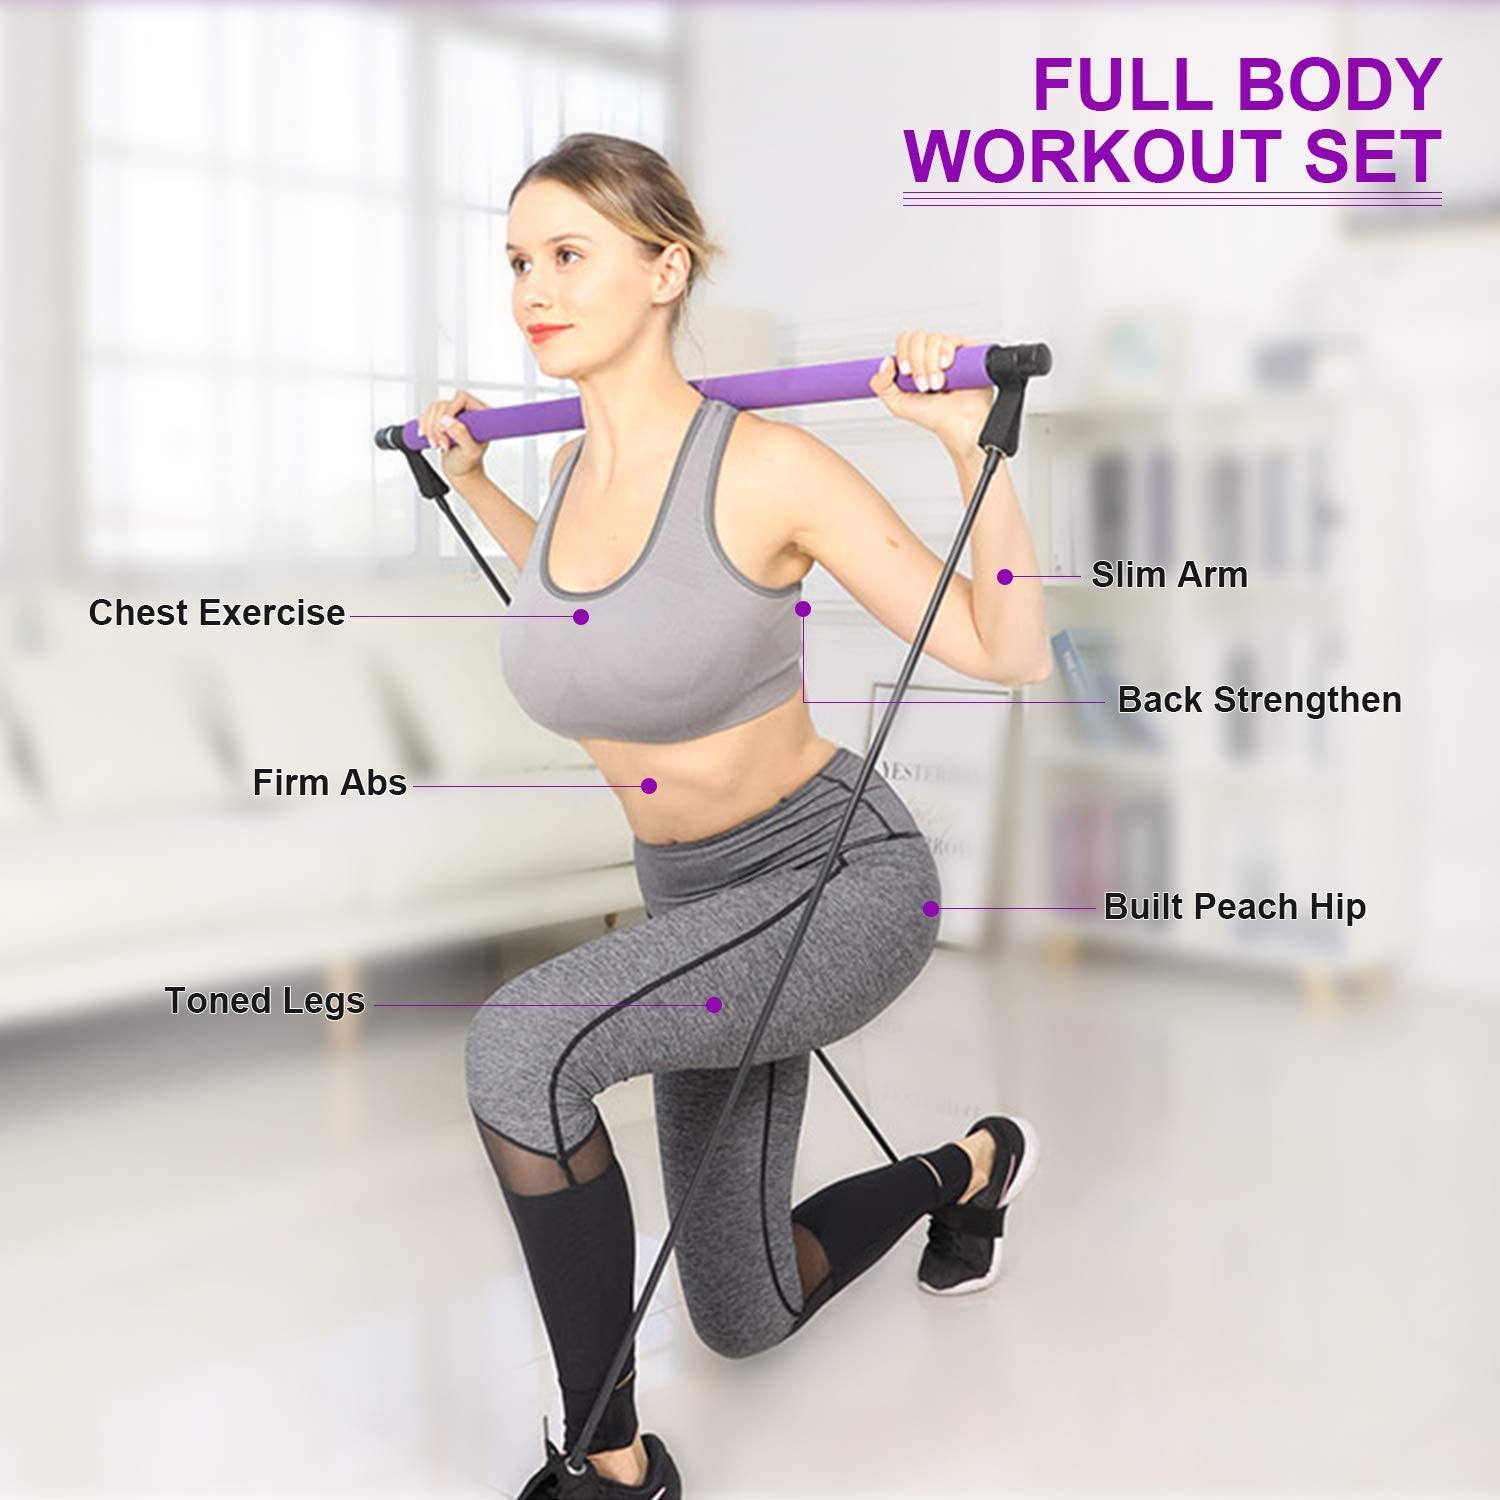 Portable Yoga Pilates Stick Exercise Stick with Foot Loop Fitness Stretching Equipment Home Gym Bodybuilding for Fully Body Workout COVVY Pilates Bar Kit with Resistance Band